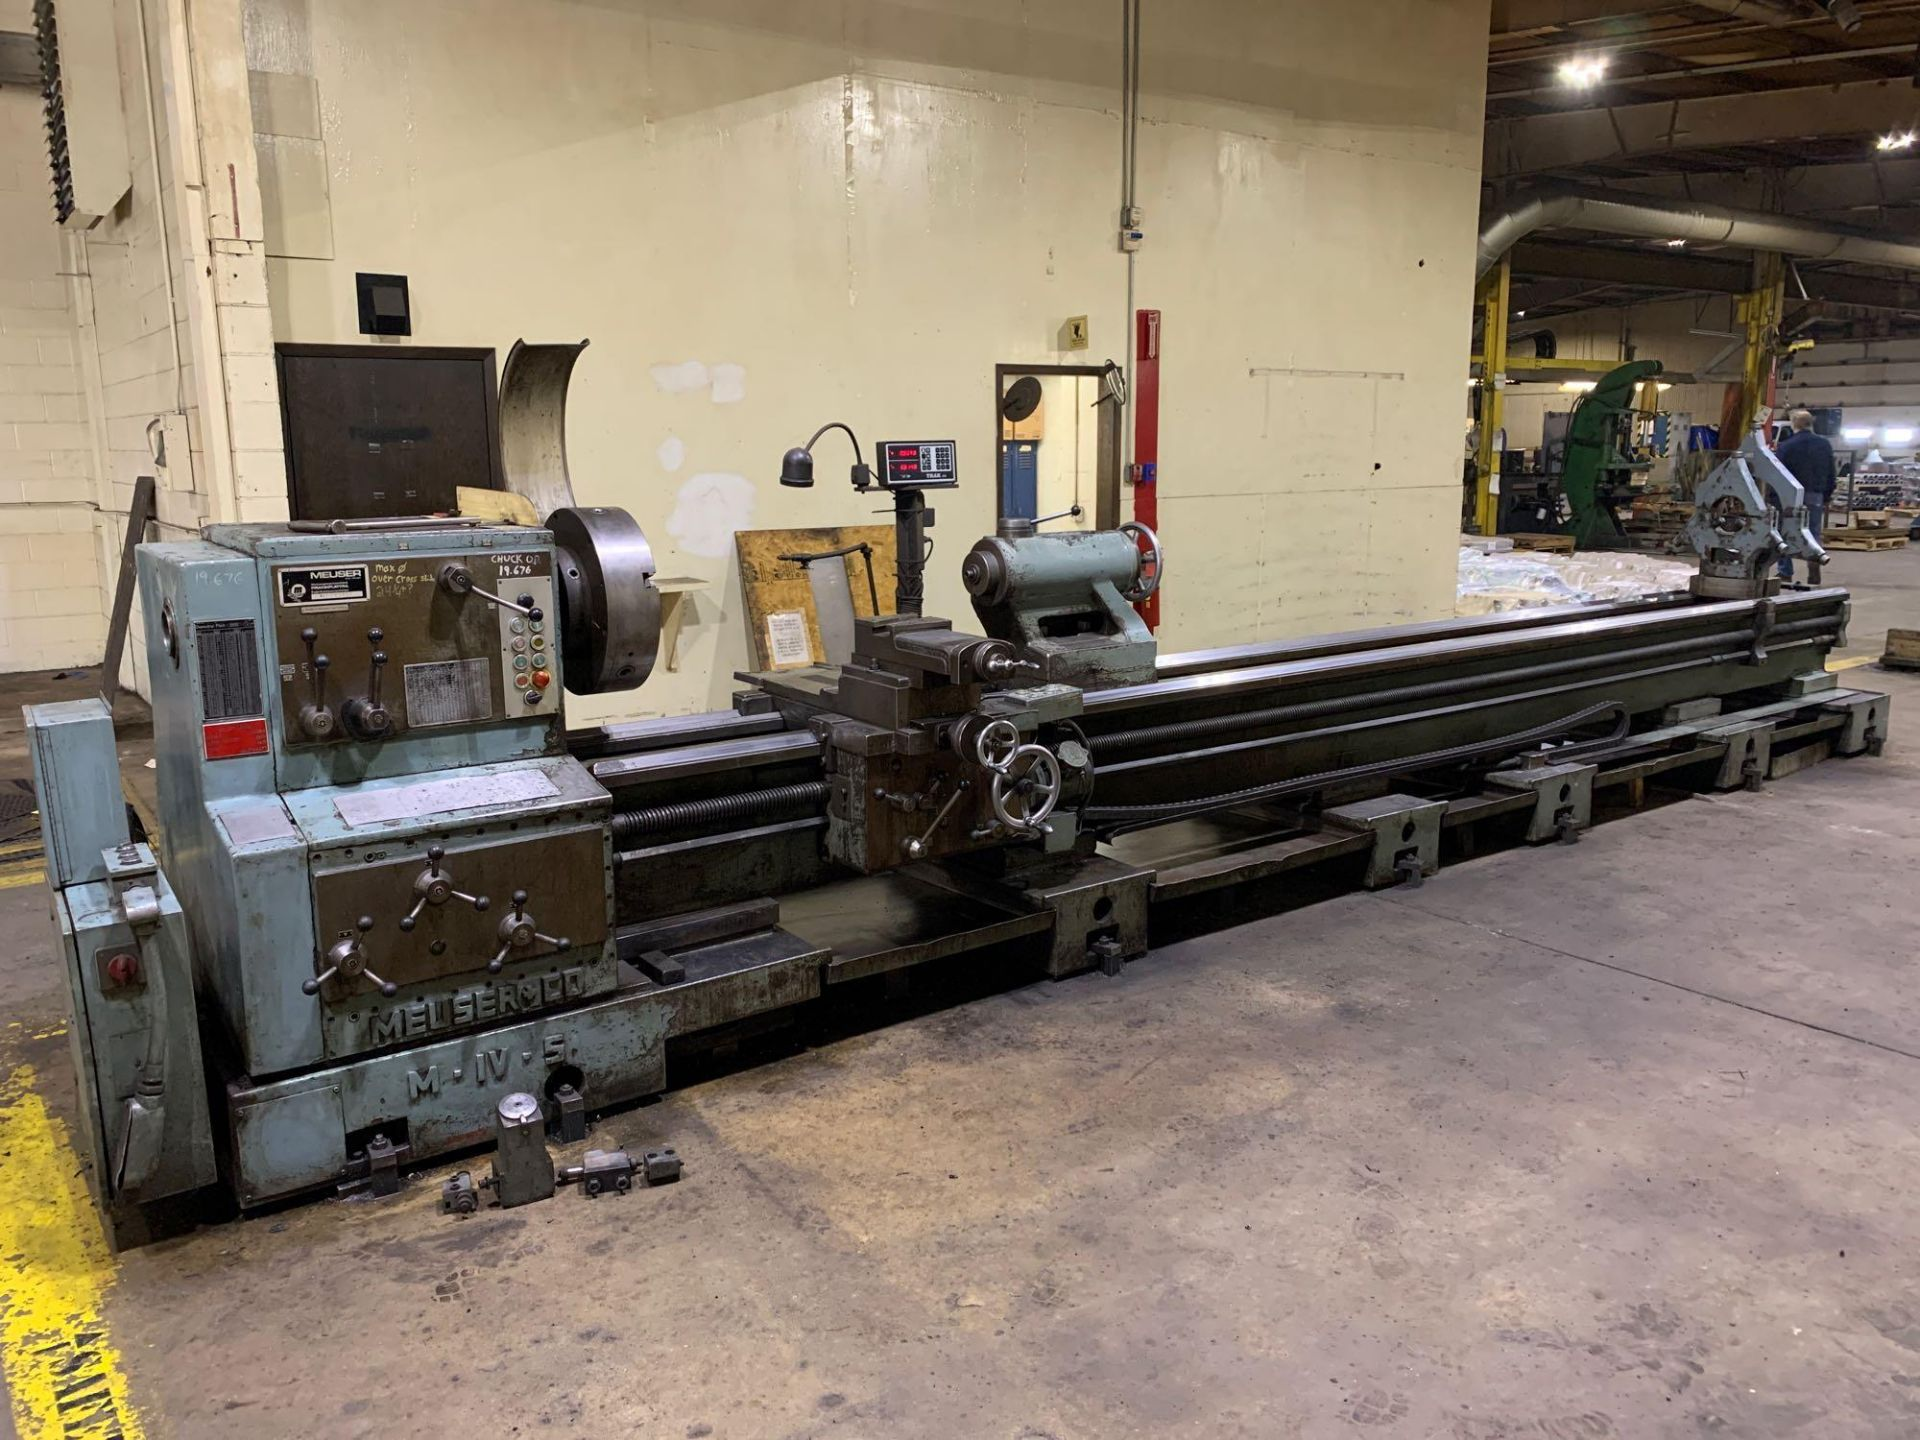 """Meuser Heavy Duty Gap Bed Engine Lathe Model: M IV S Serial Number: 45377 Rated Capacity:32""""/45"""" x - Image 20 of 35"""